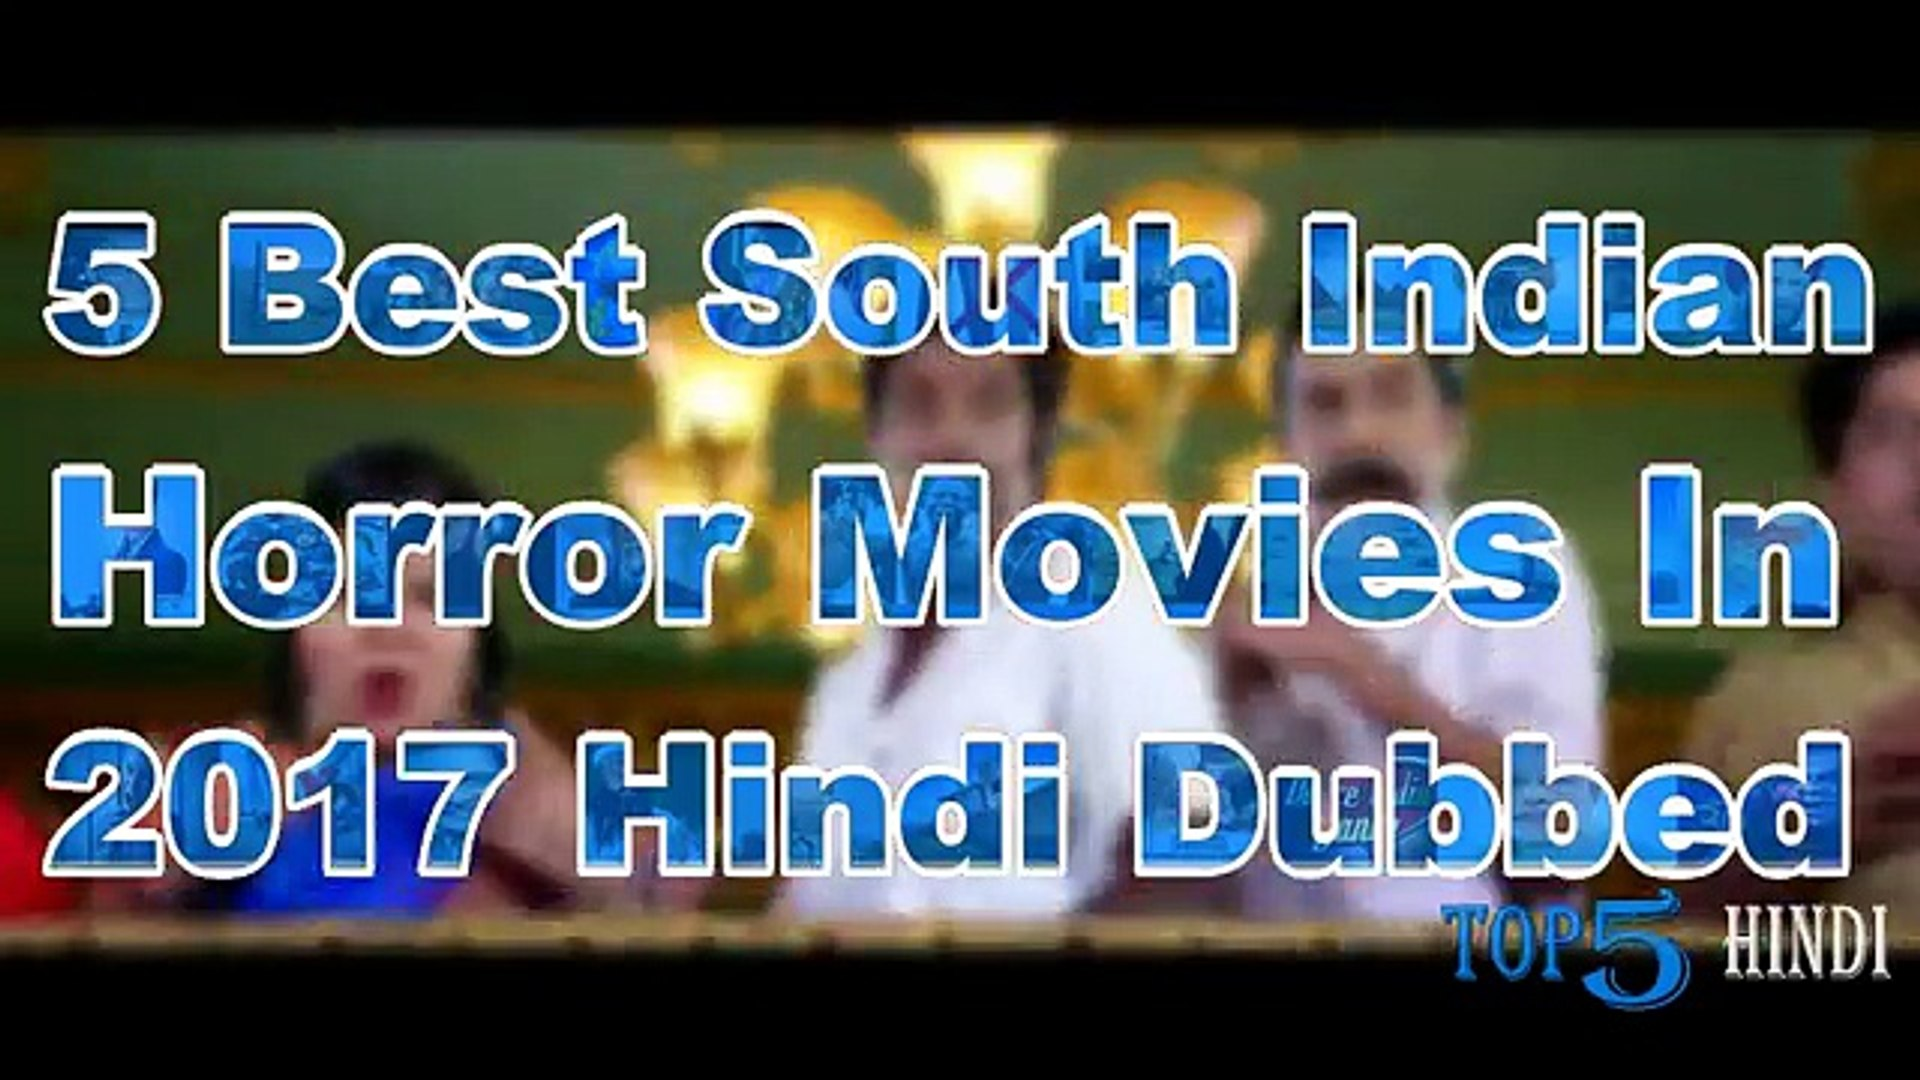 Top 5 Best South Indian Horror Movies In 2017 Hindi Dubbed Top5 Hindi Video Dailymotion